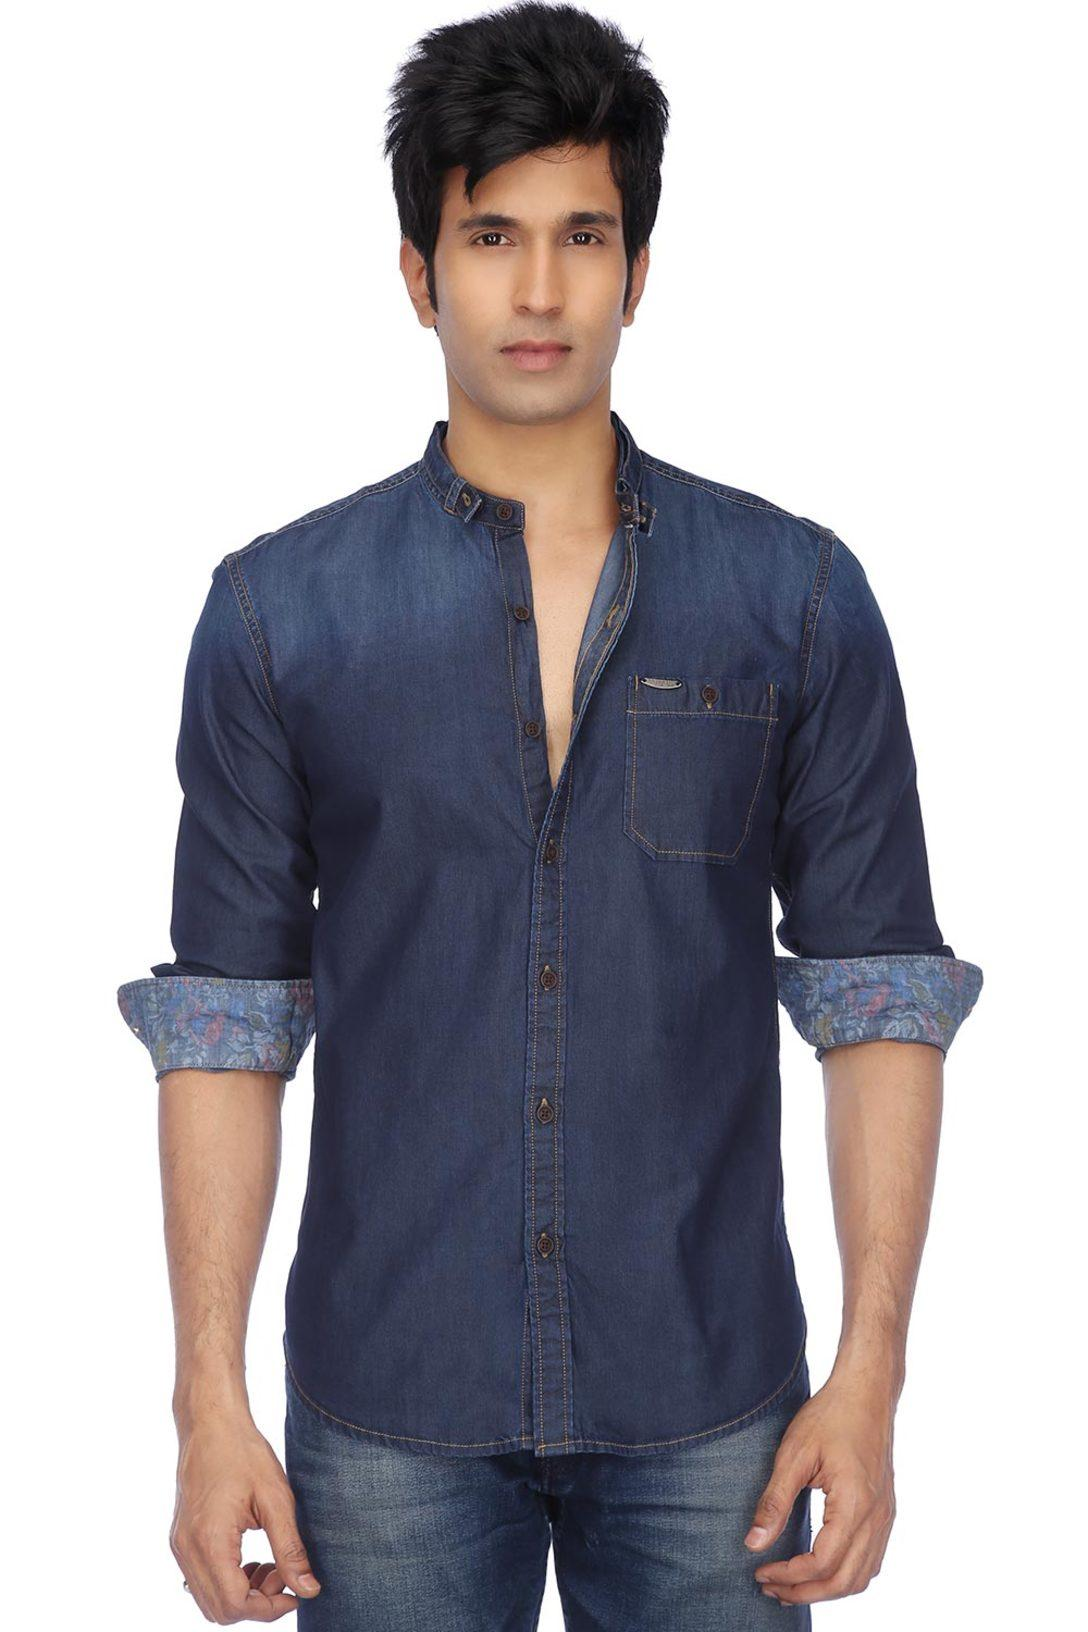 64a513d2a7 Buy U.S. POLO ASSN. DENIM U.S.Polo Assn.-Mens Full Sleeves Slim Fit Casual  Solid Shirt